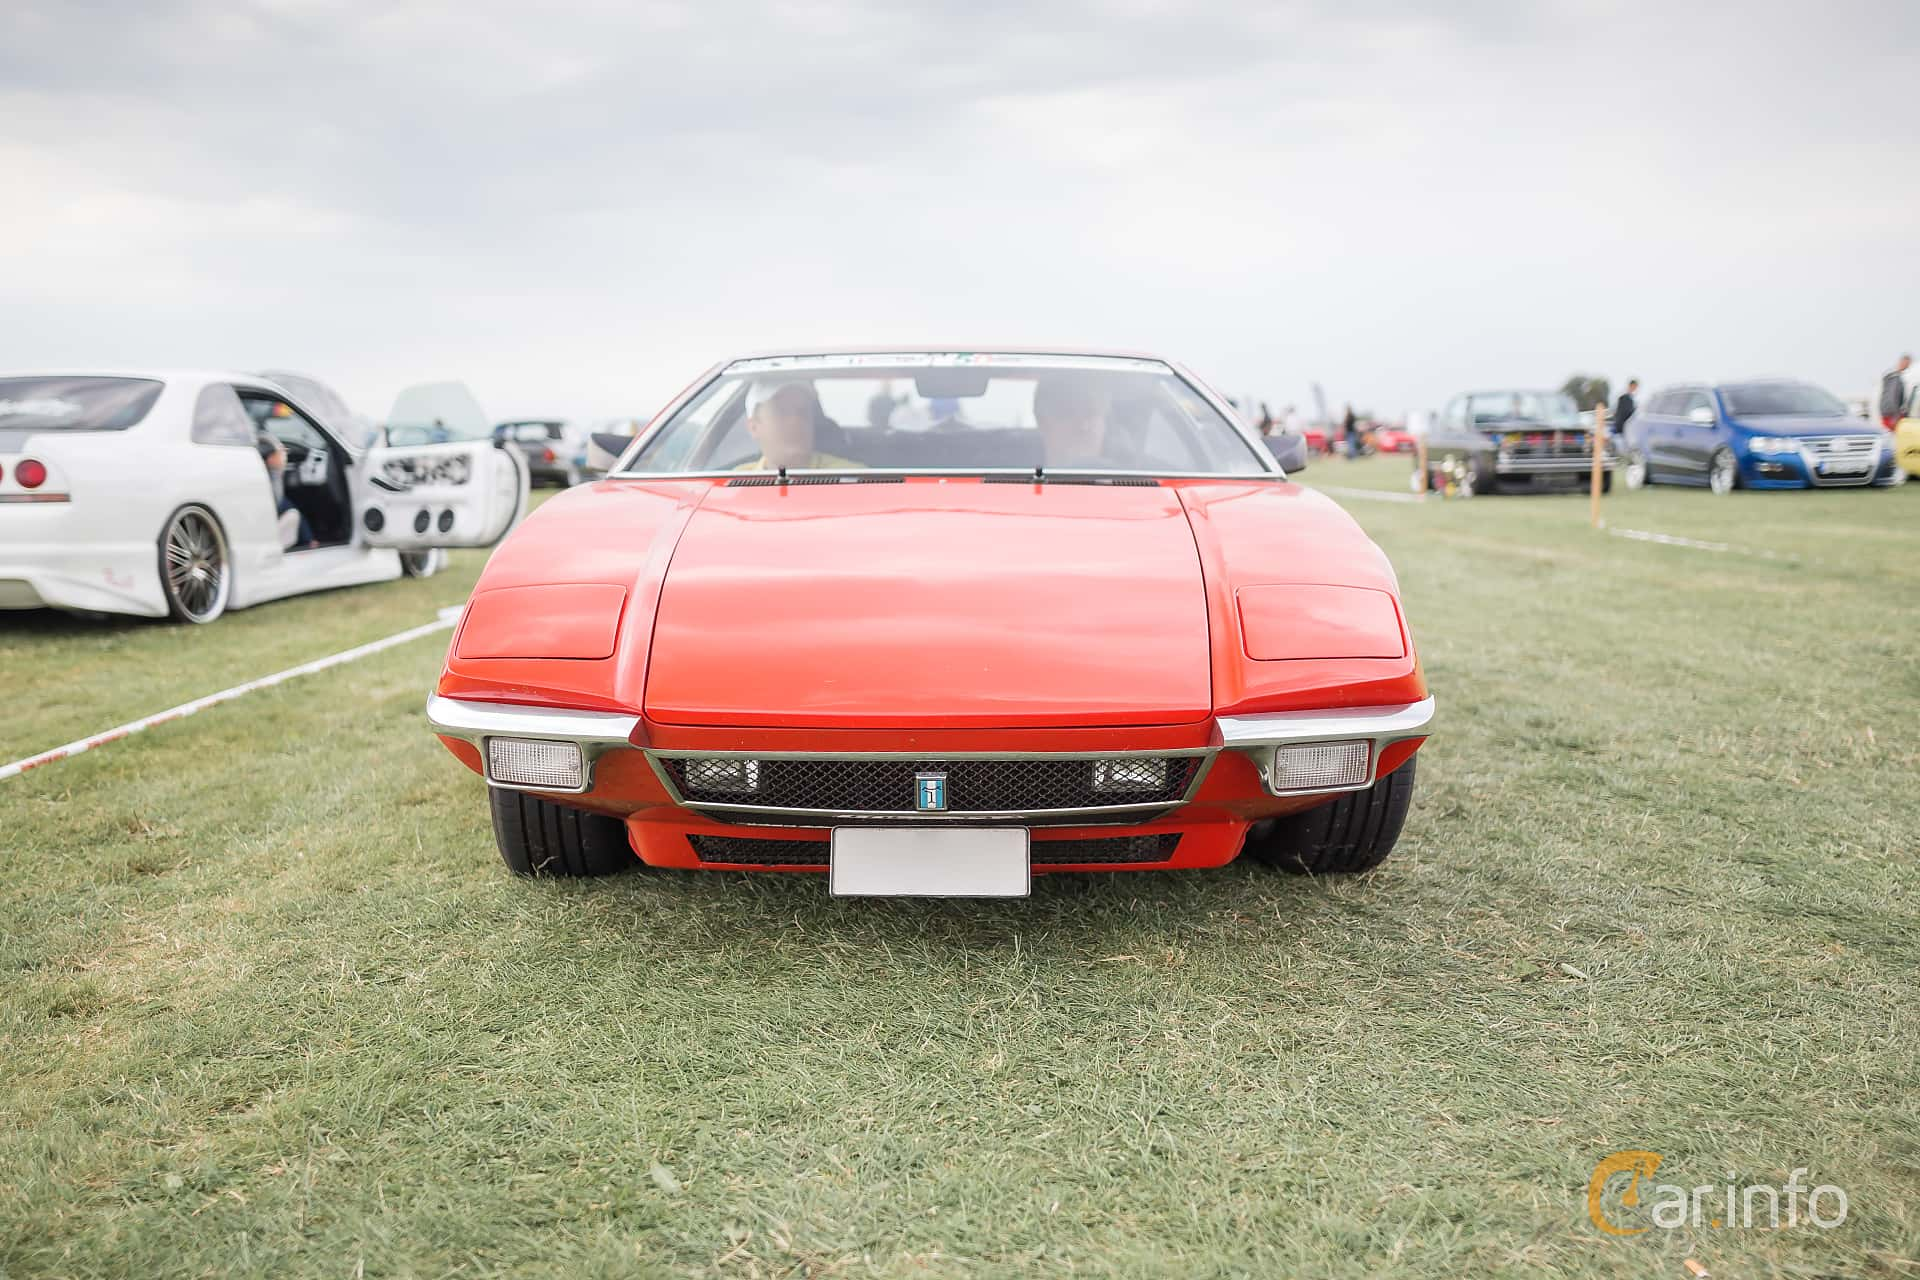 De Tomaso Pantera 5.8 V8 Manual, 314hp, 1972 at Vallåkraträffen 2015